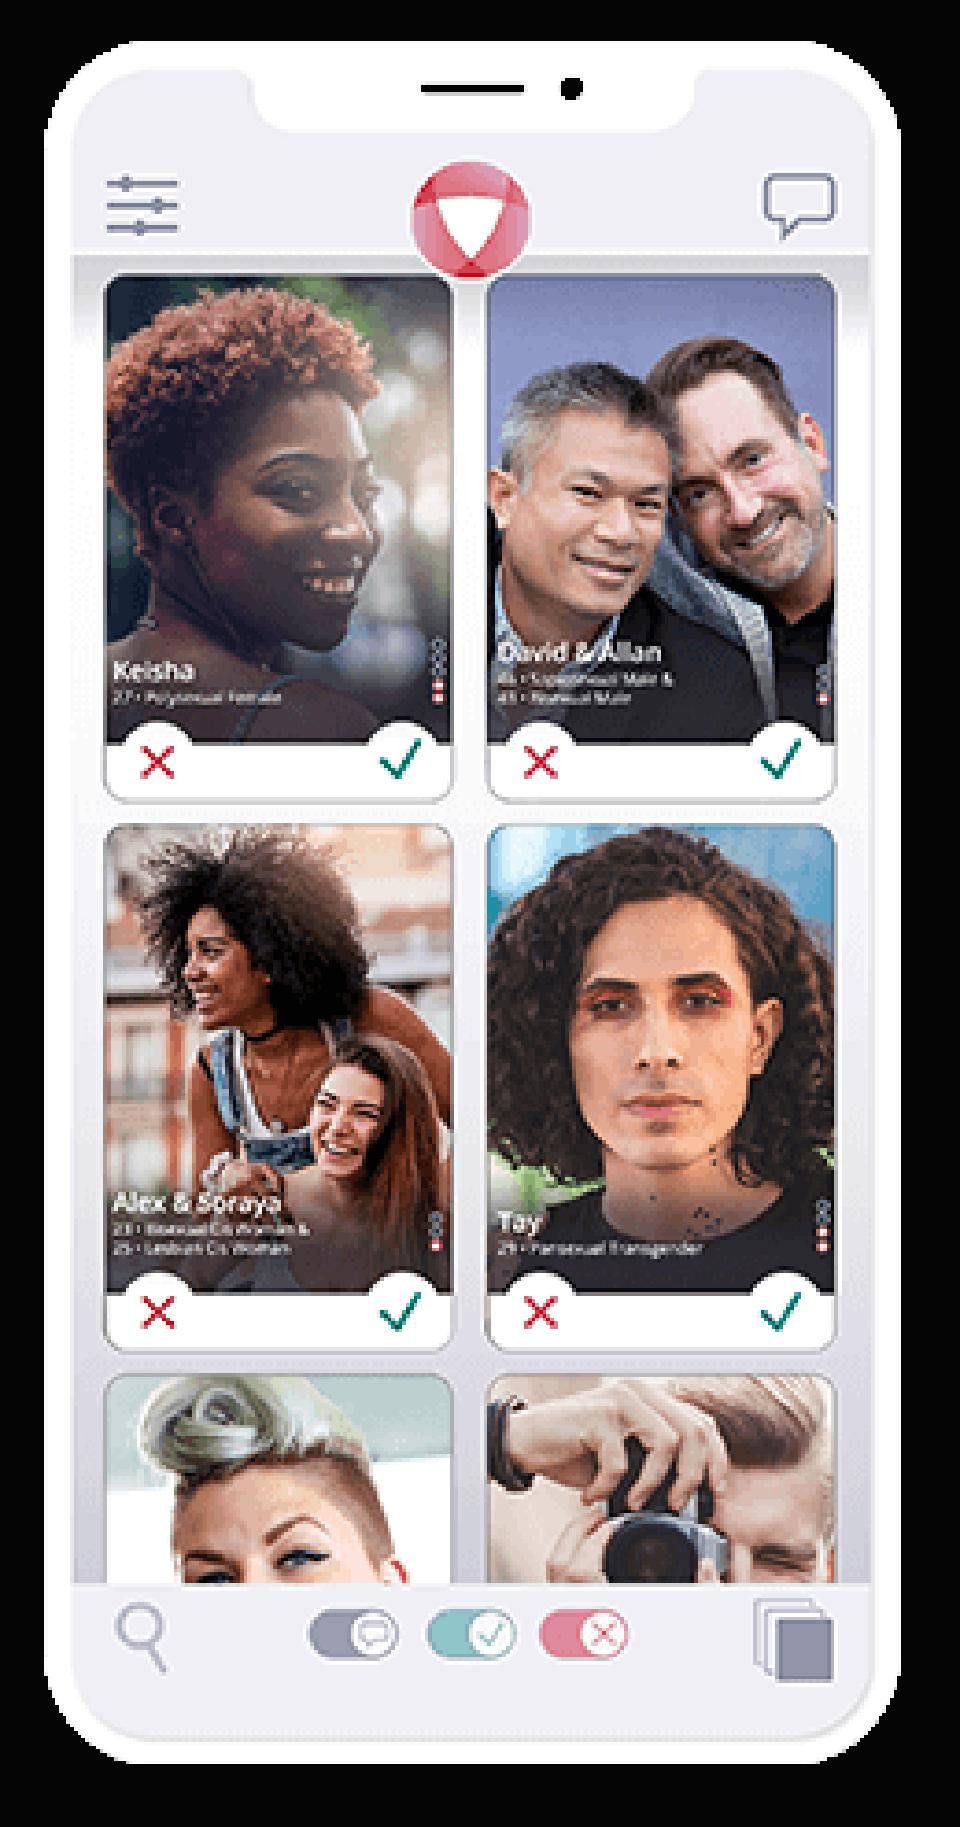 Hashtag open is a dating app that allows individuals and couples and thruples and more to engage each other in conversation, or more.